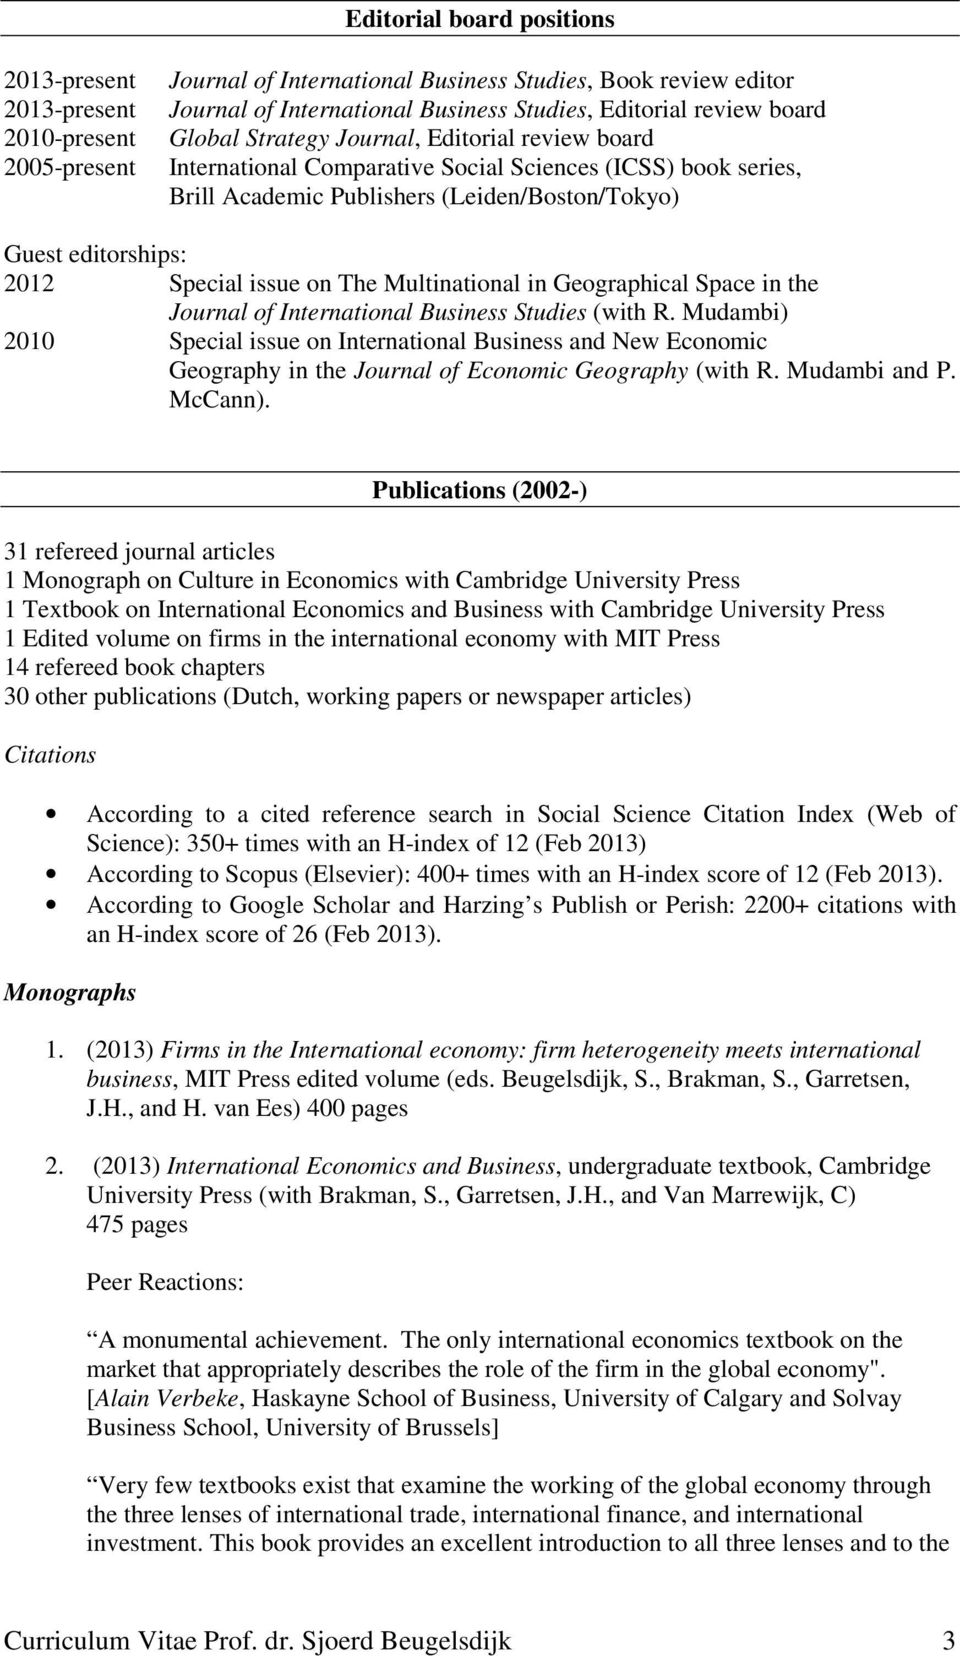 issue on The Multinational in Geographical Space in the Journal of International Business Studies (with R.